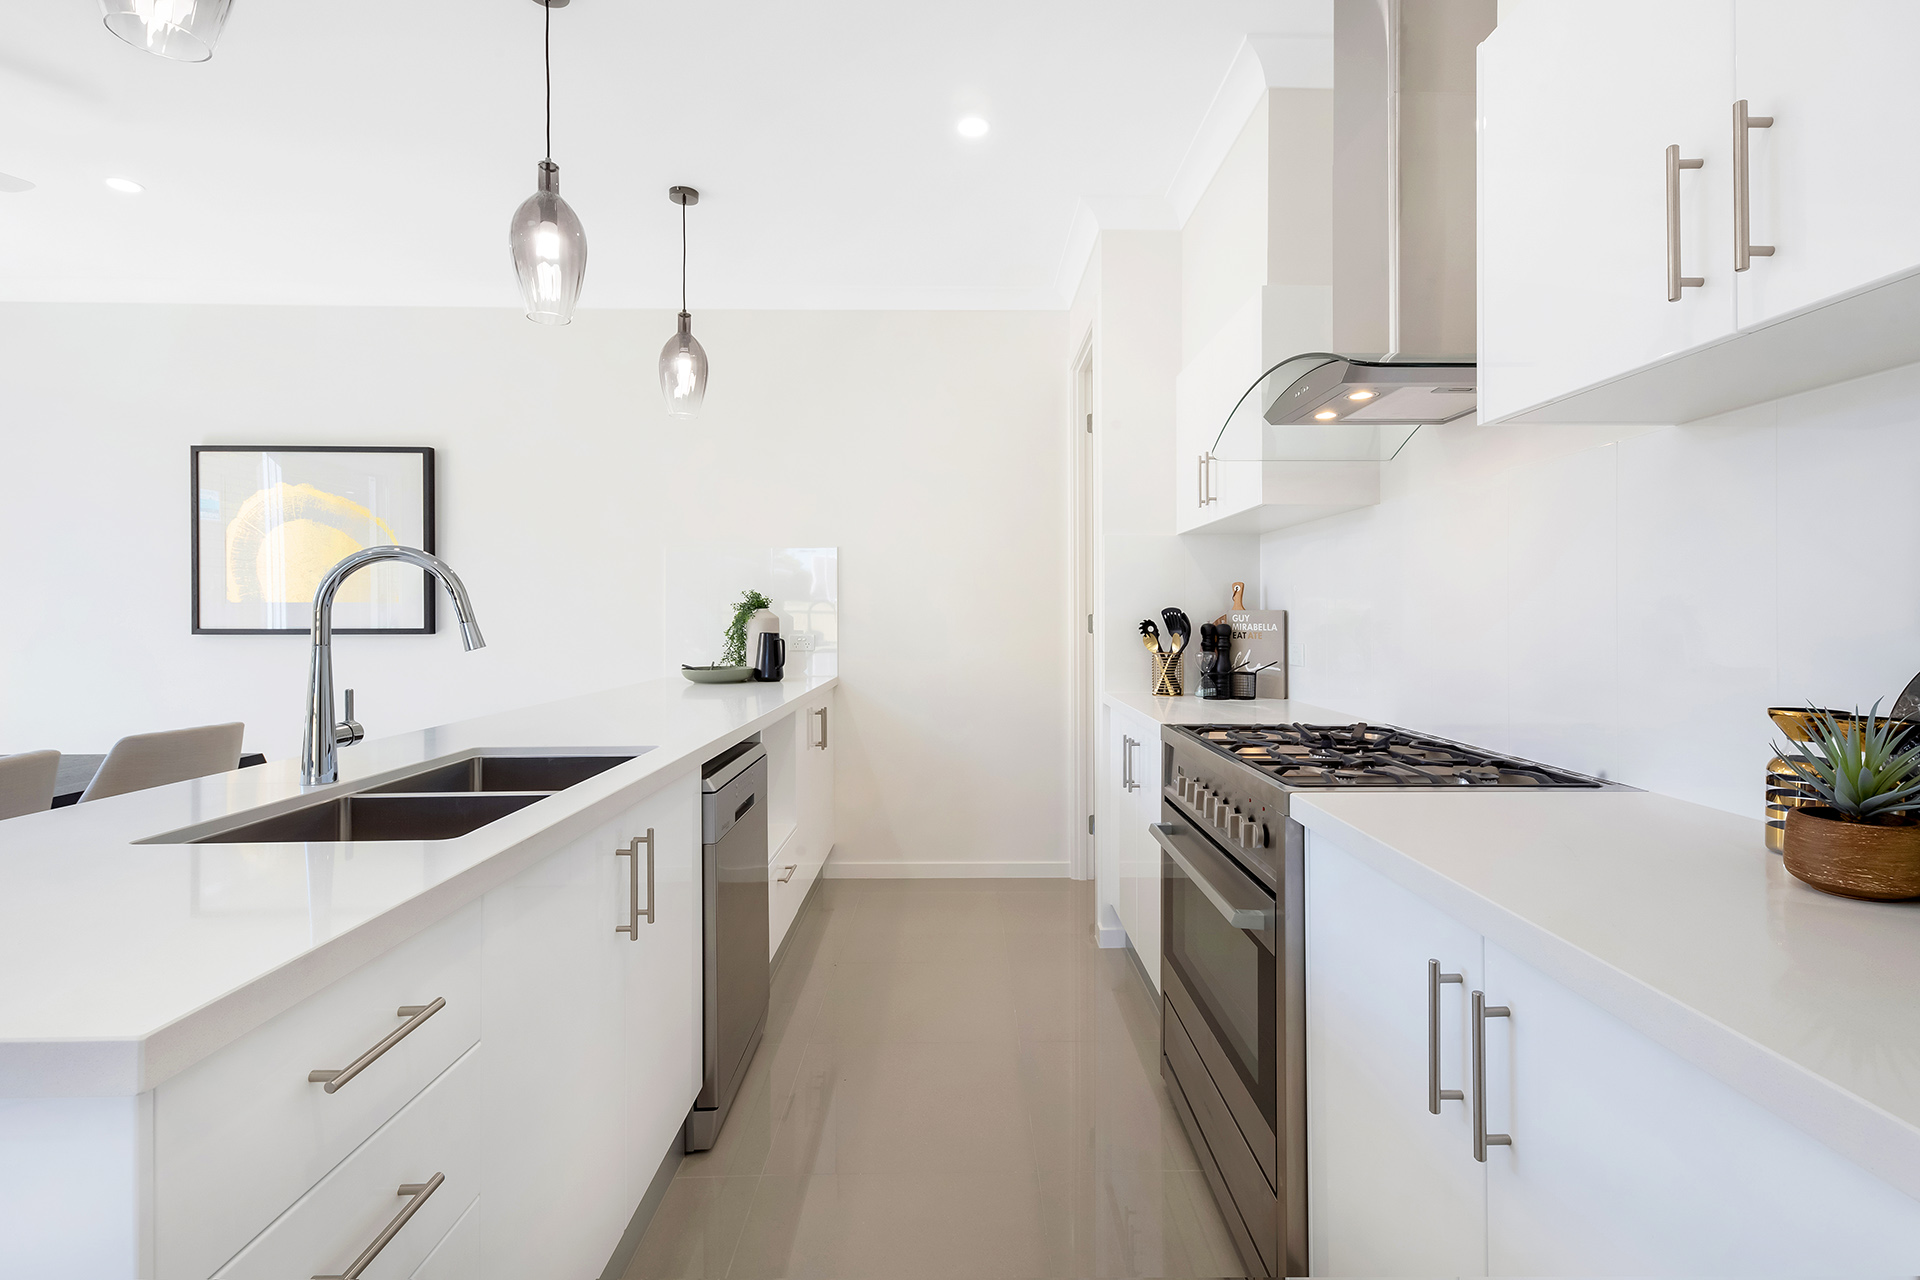 brand new homes can be must more modern and appealing to home buyers and renters